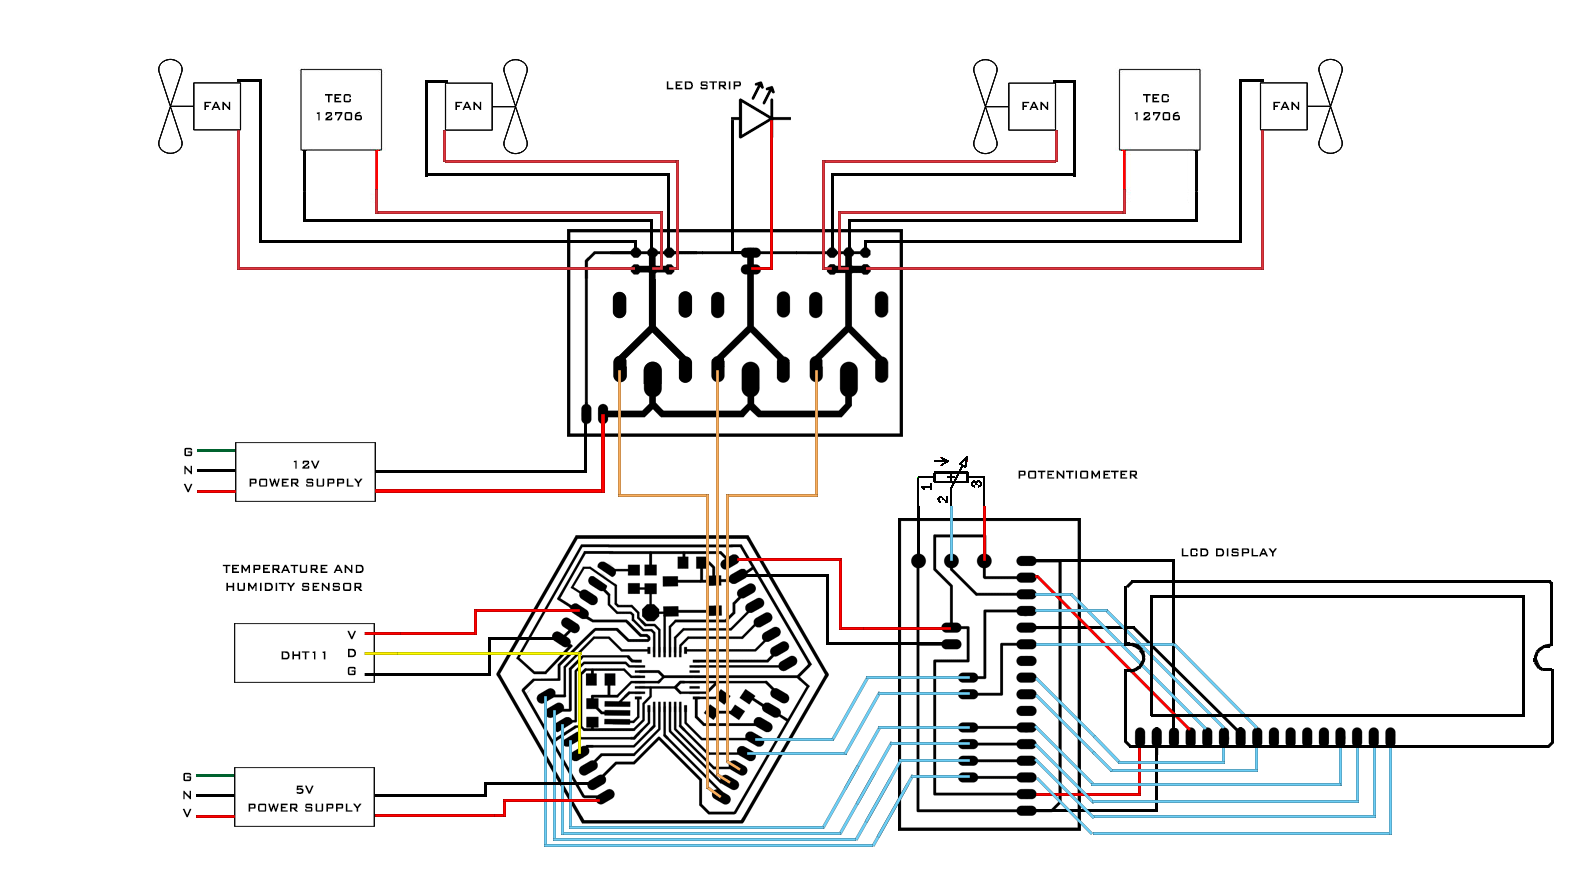 Fab Academy Final Project Hermet Relay Board Diagram Full Layout For Fabduino Connected To Lcd Display Led Strip Dht11 Temperature Humidity Sensor Controlling Heating